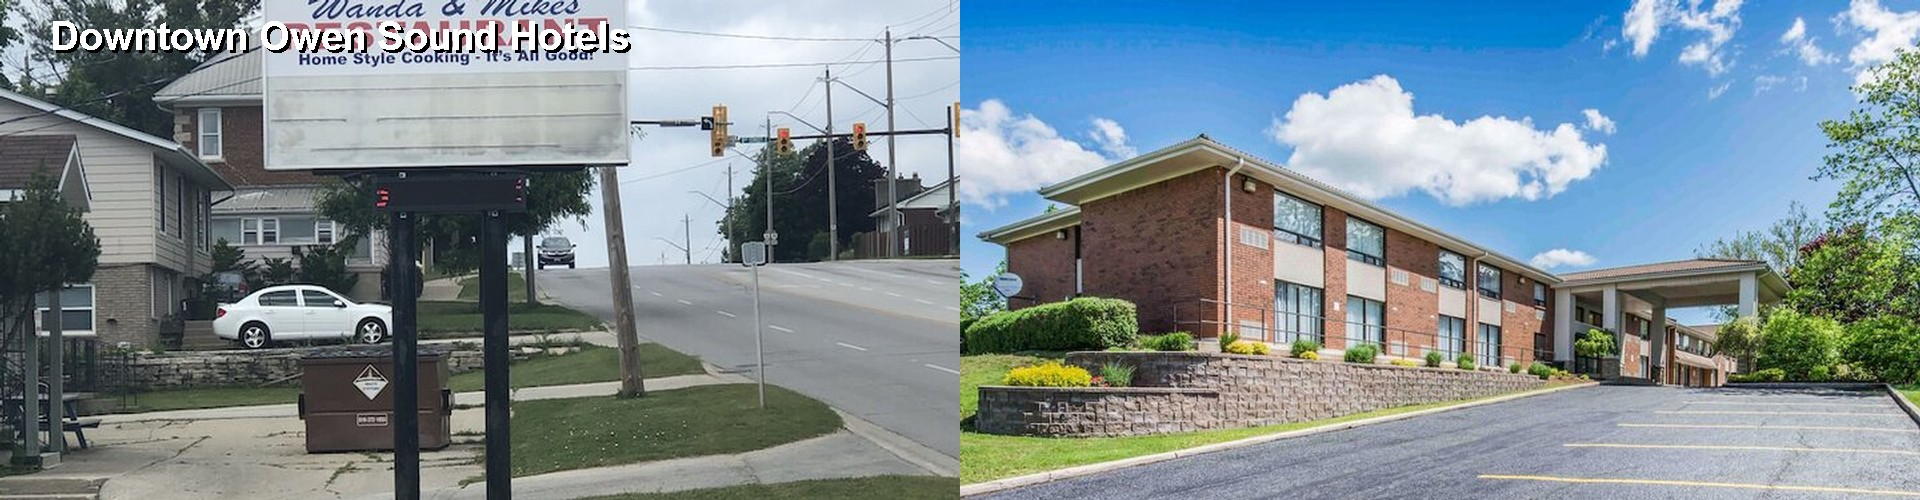 5 Best Hotels near Downtown Owen Sound